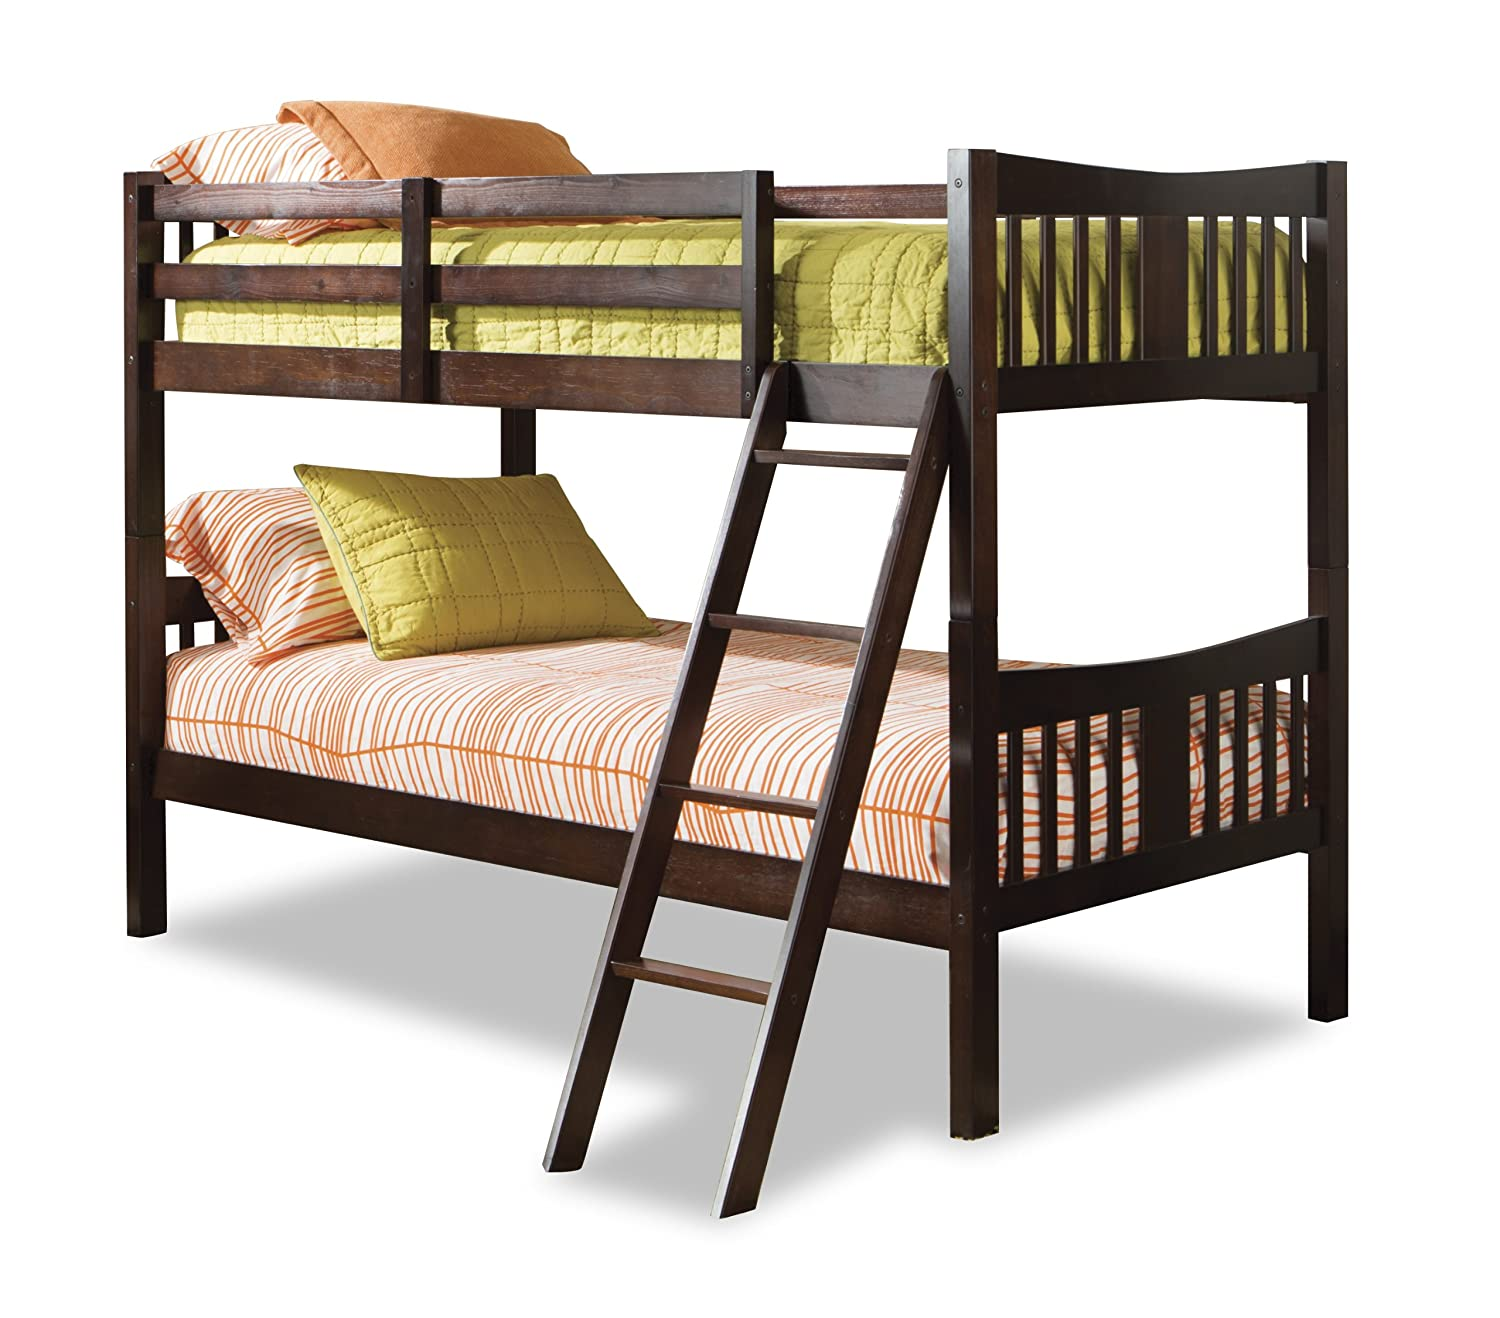 Twin bunk beds espresso wood loft kids bedroom furniture for Loft furniture